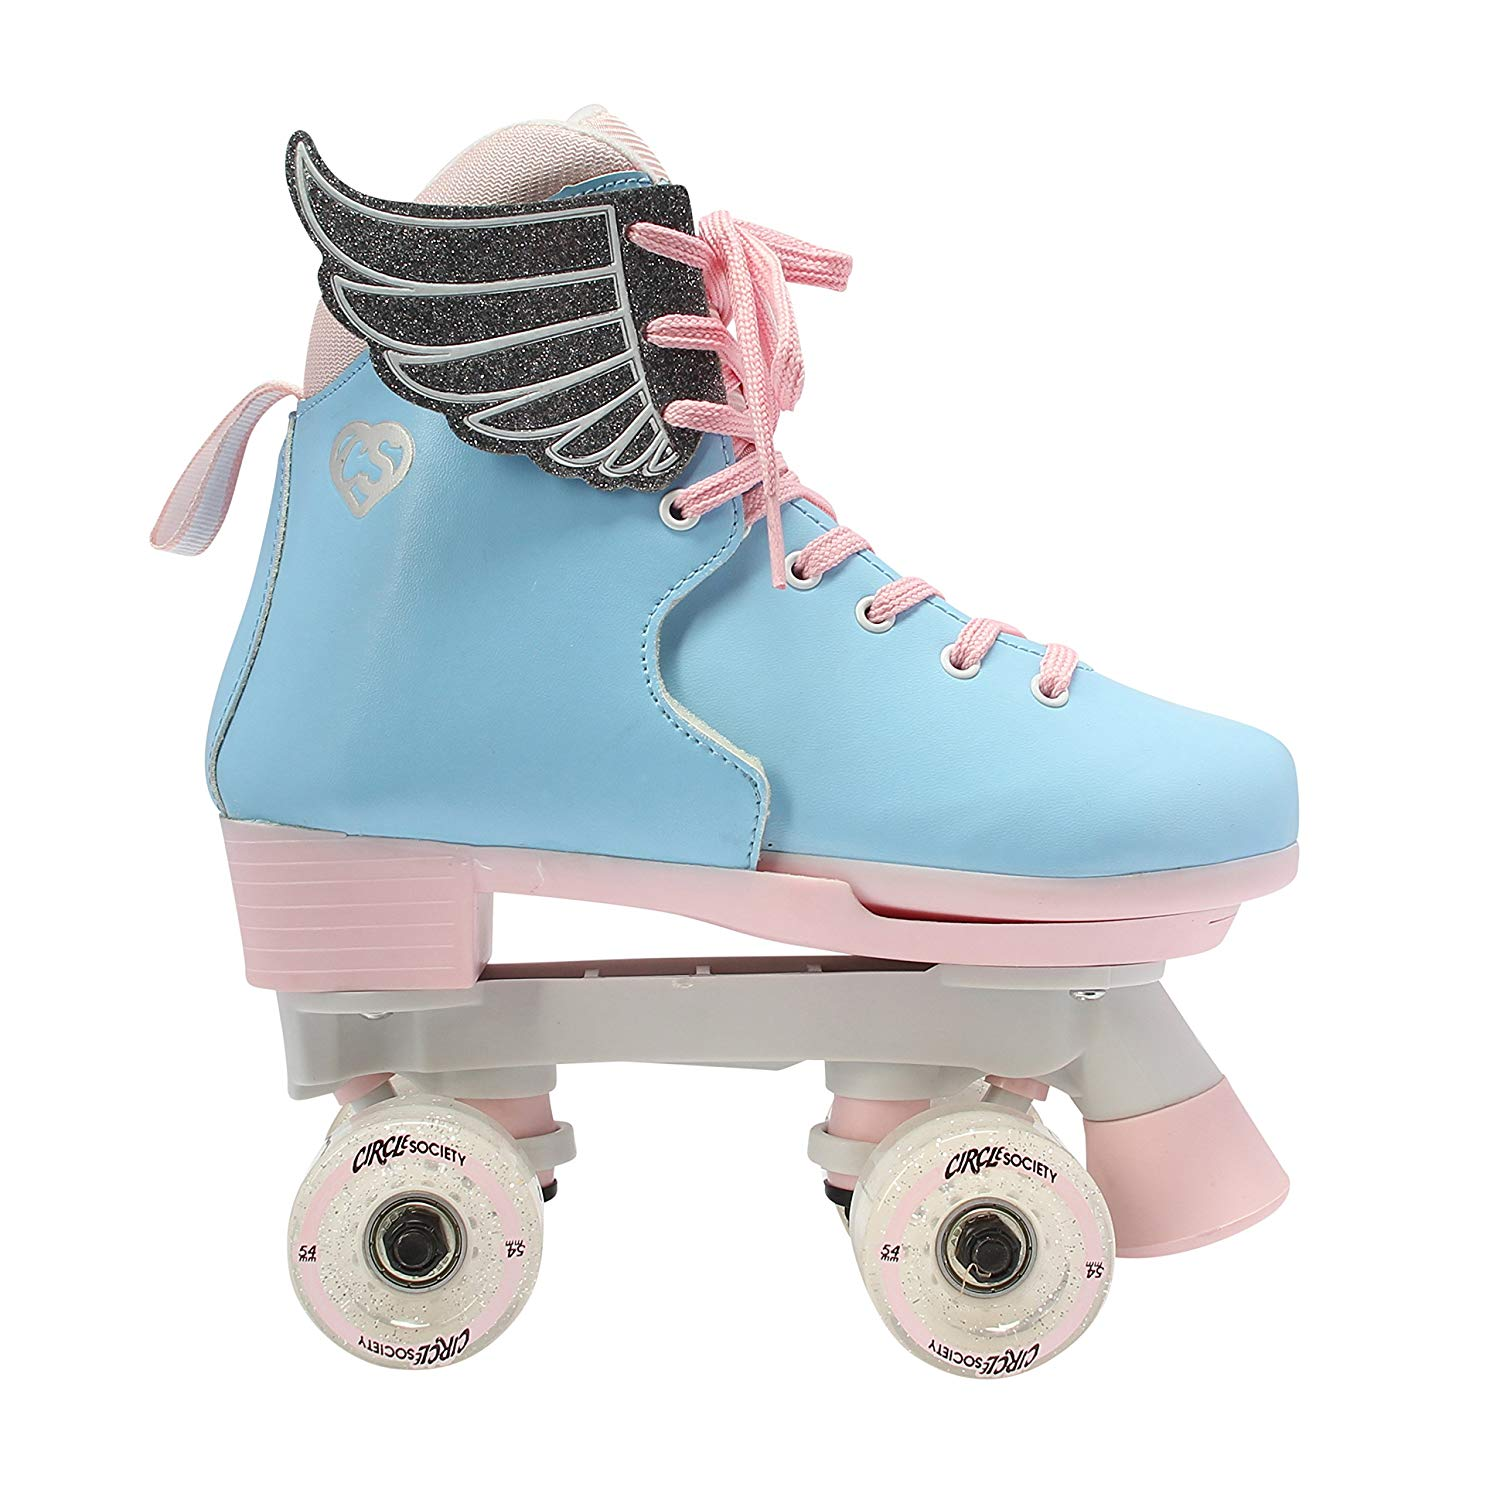 Roller Skates Cotton Candy πλαϊνή όψη